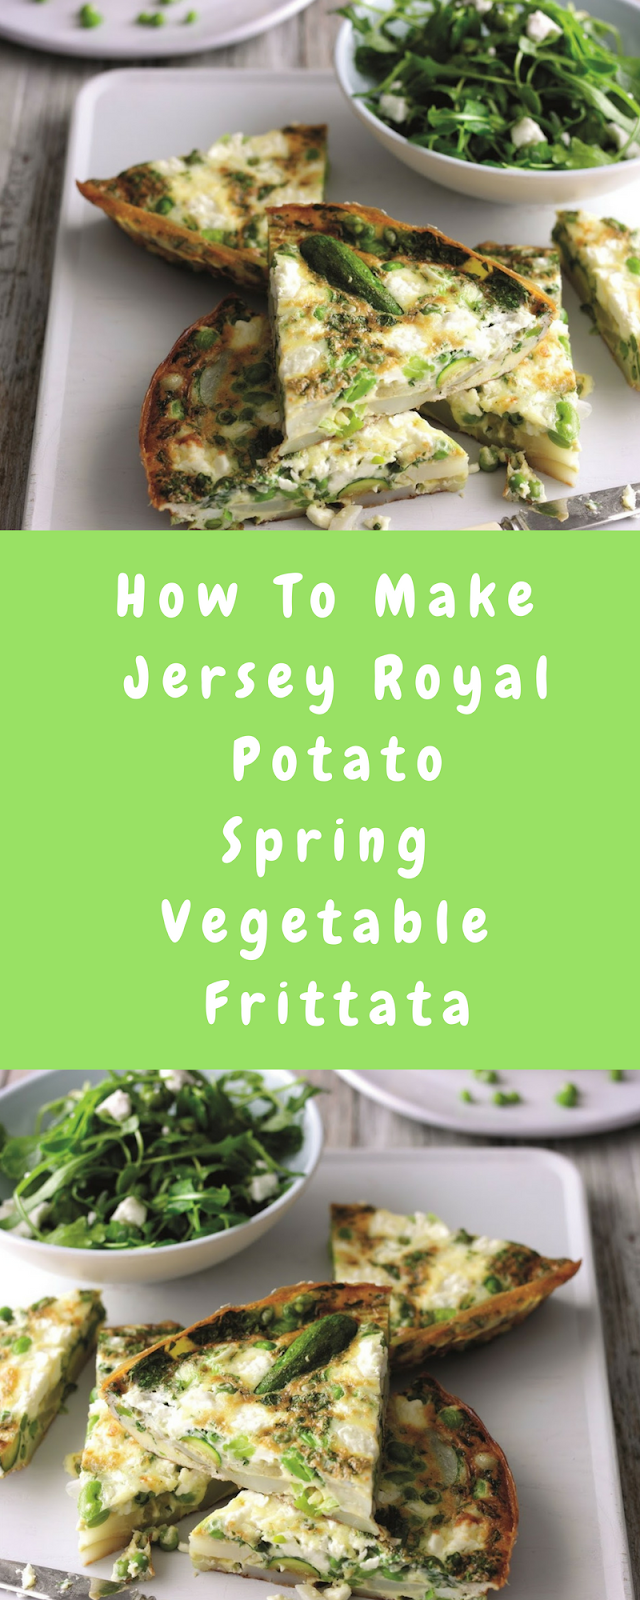 How To Make Jersey Royal Potato Spring Vegetable Frittata